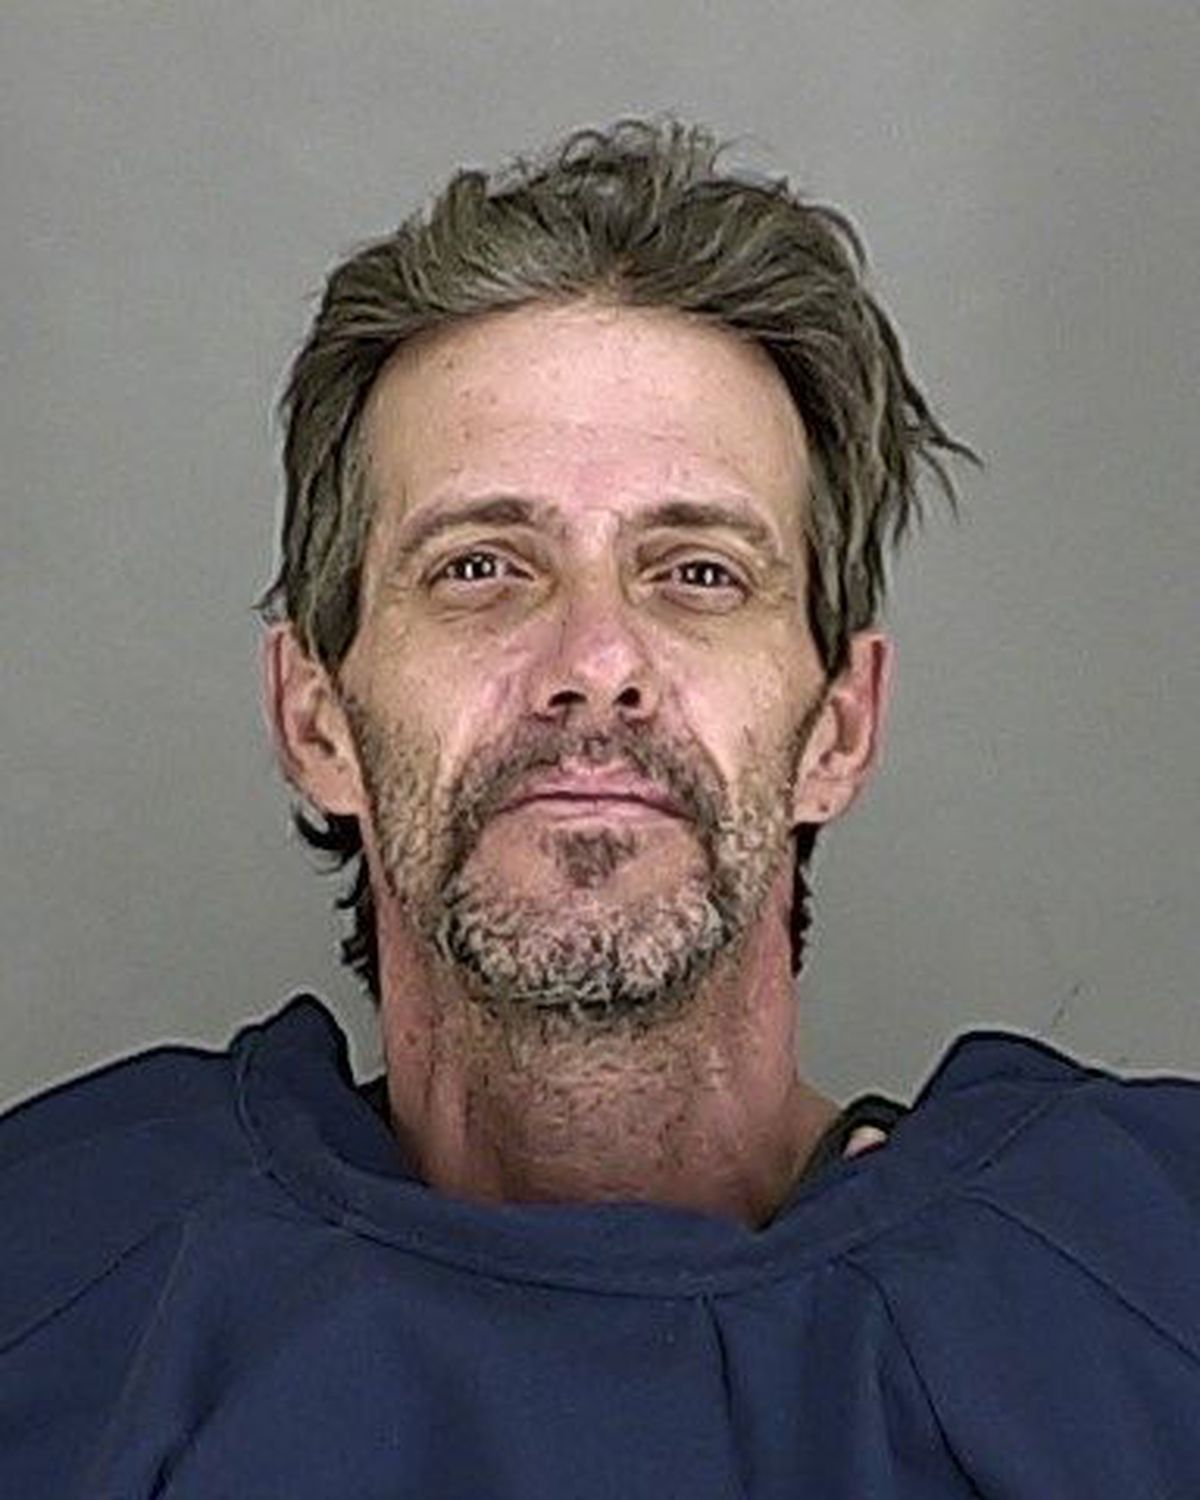 Akron Police Man Named Derringer Robs Gas Station With Fake Gun Made Out Of Furniture On Christmas